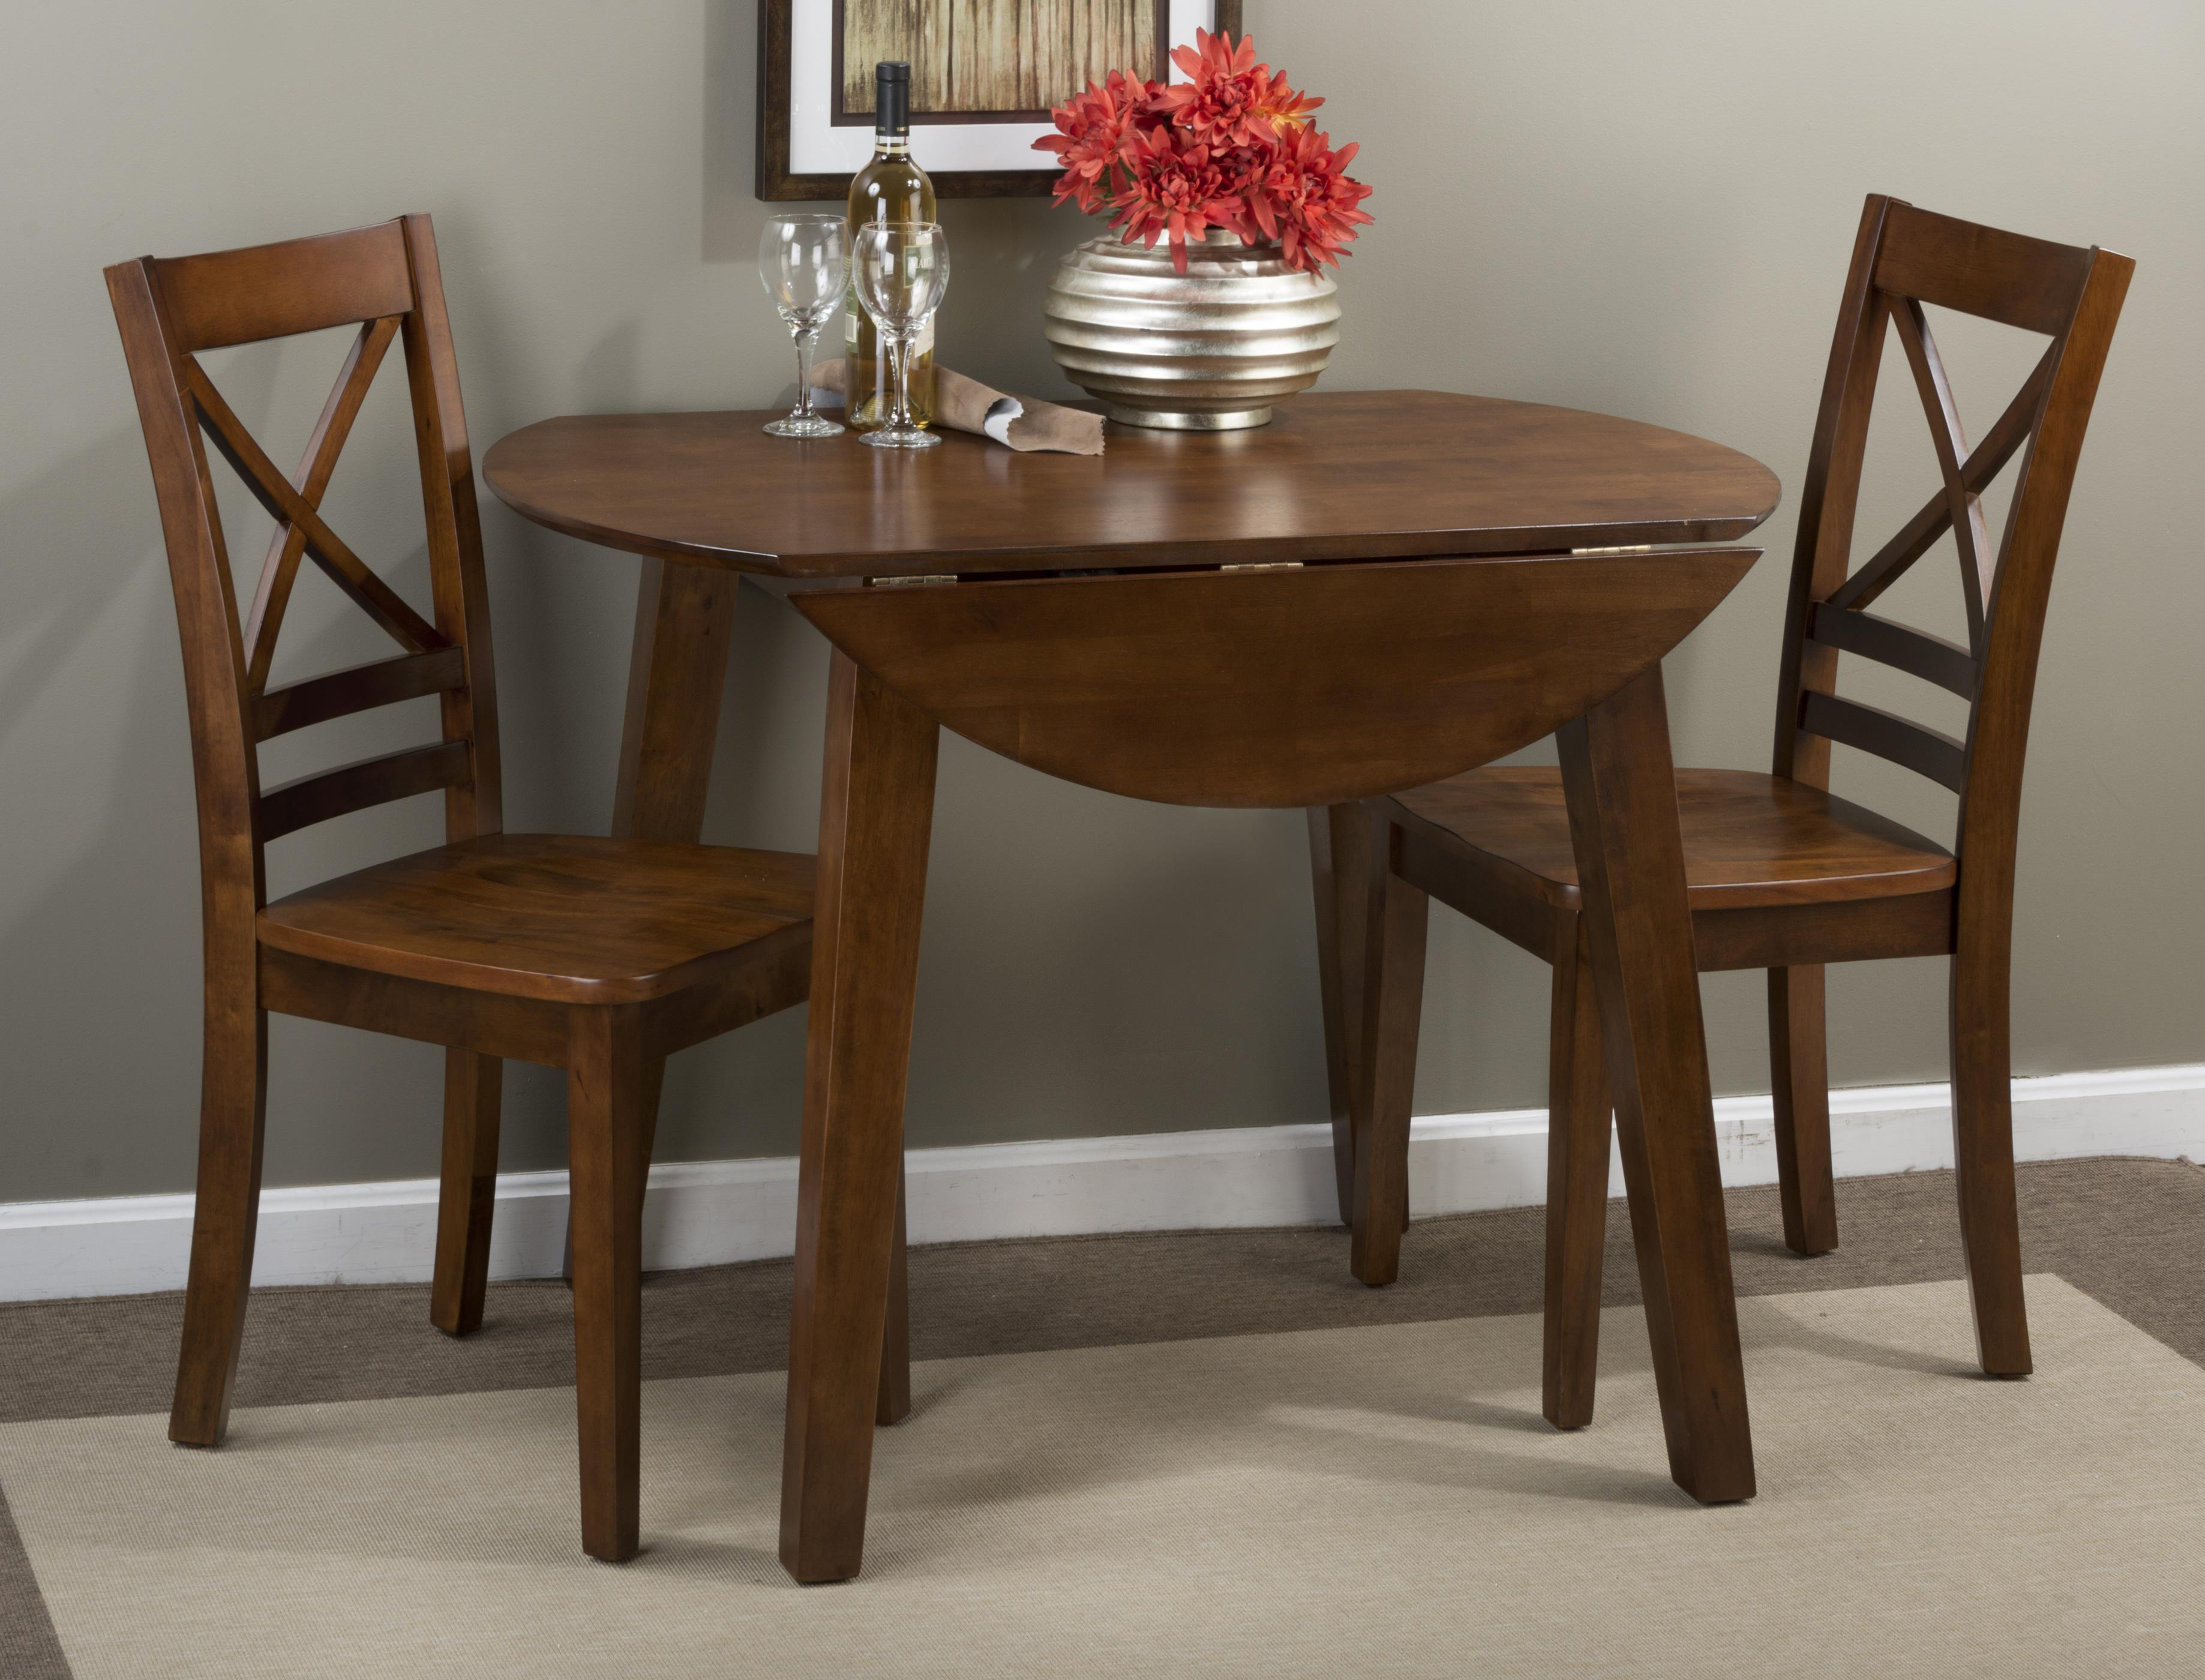 Round Table And Chair Set Jofran Simplicity Round Table And 2 Chair Set With Quotx